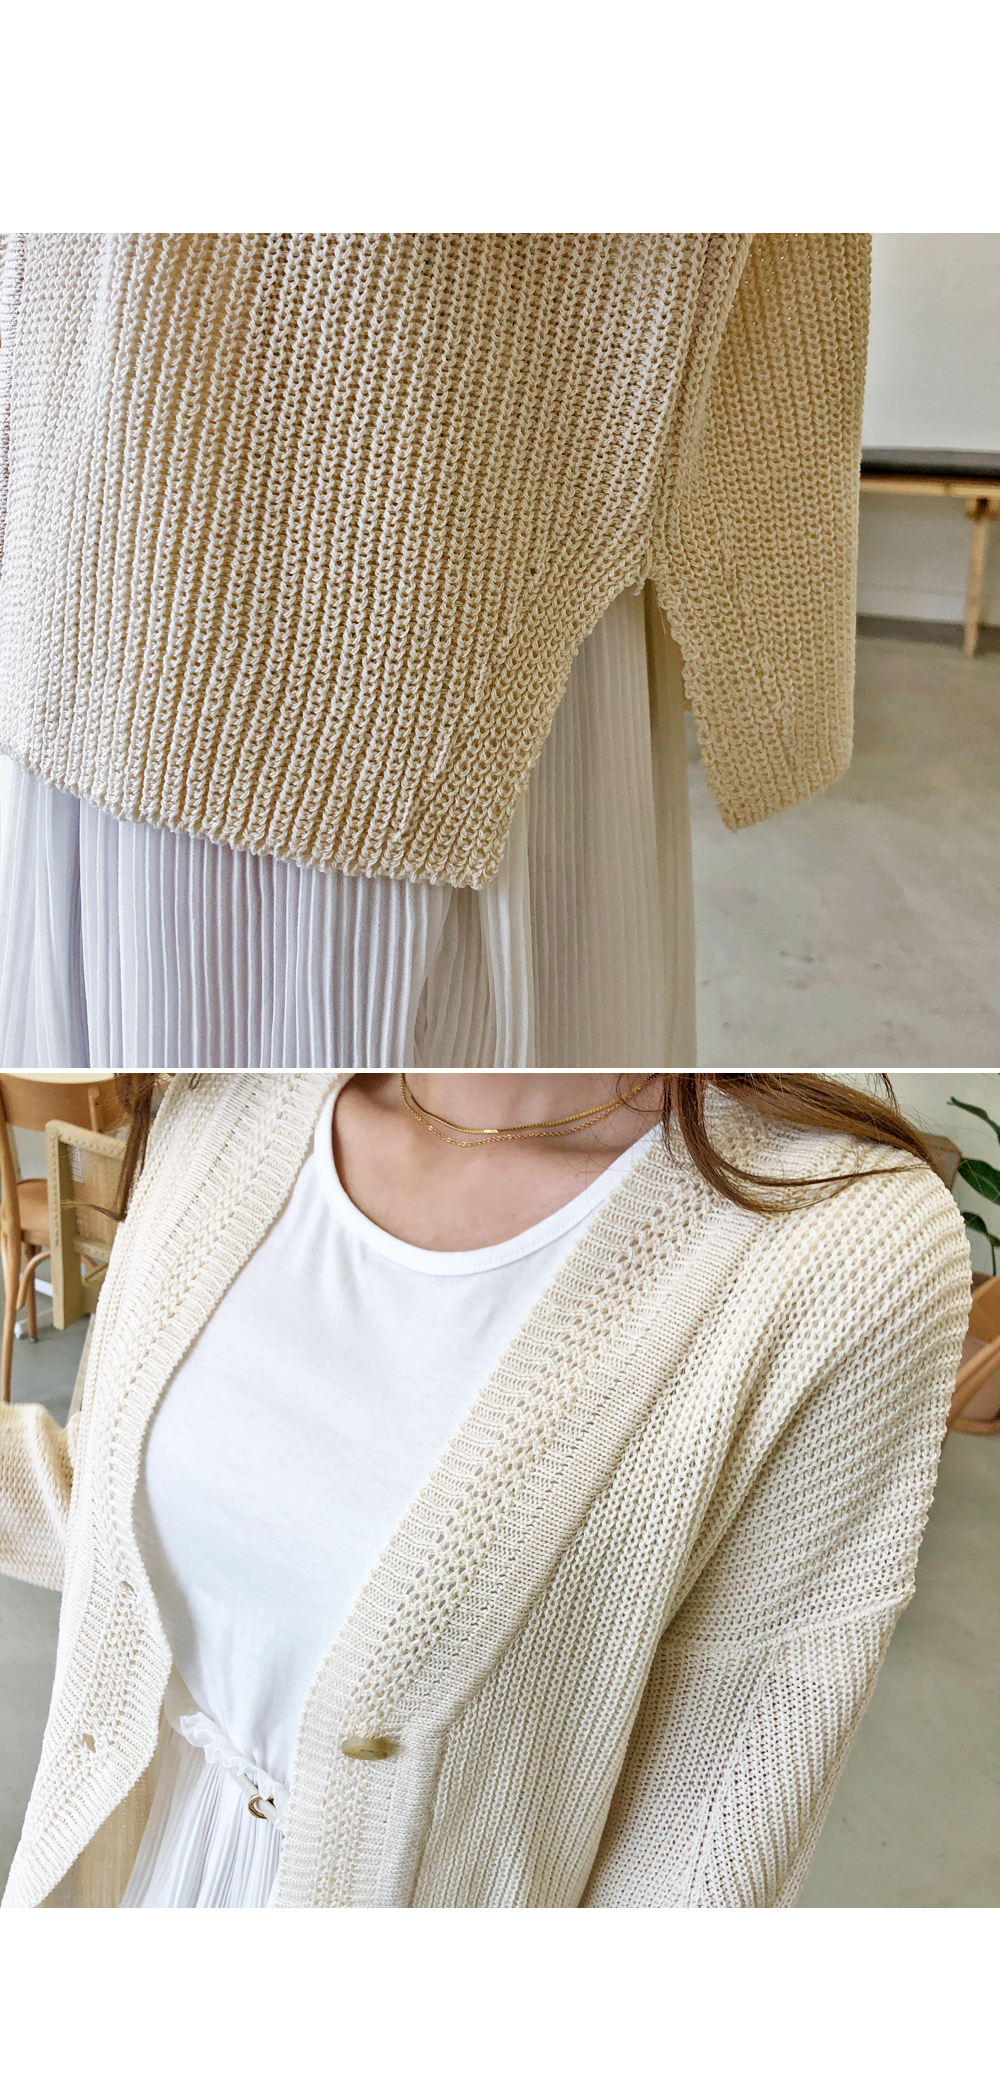 Basic Day cardigan